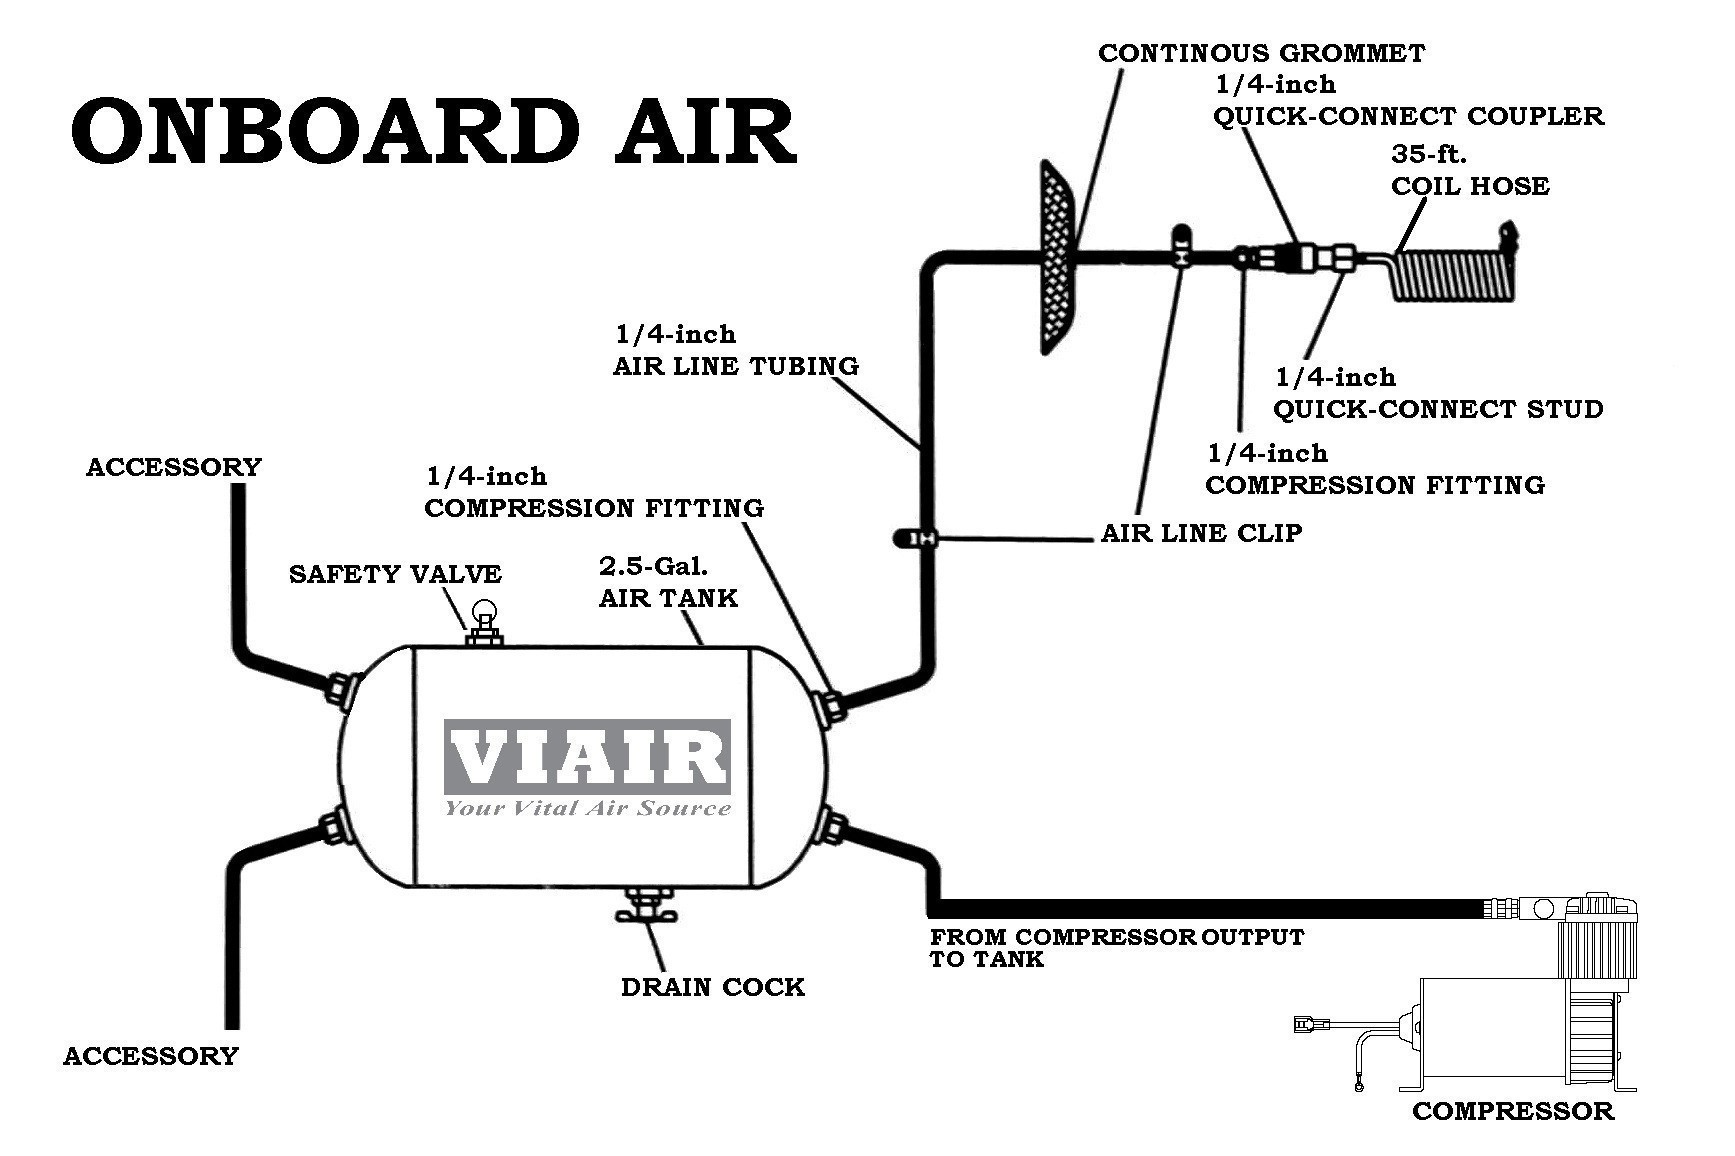 Air horn relay diagram data wiring diagrams air horn diagram information of wiring diagram u2022 rh kimskloset co air horn compressor relay wiring diagram relay switch diagram asfbconference2016 Choice Image